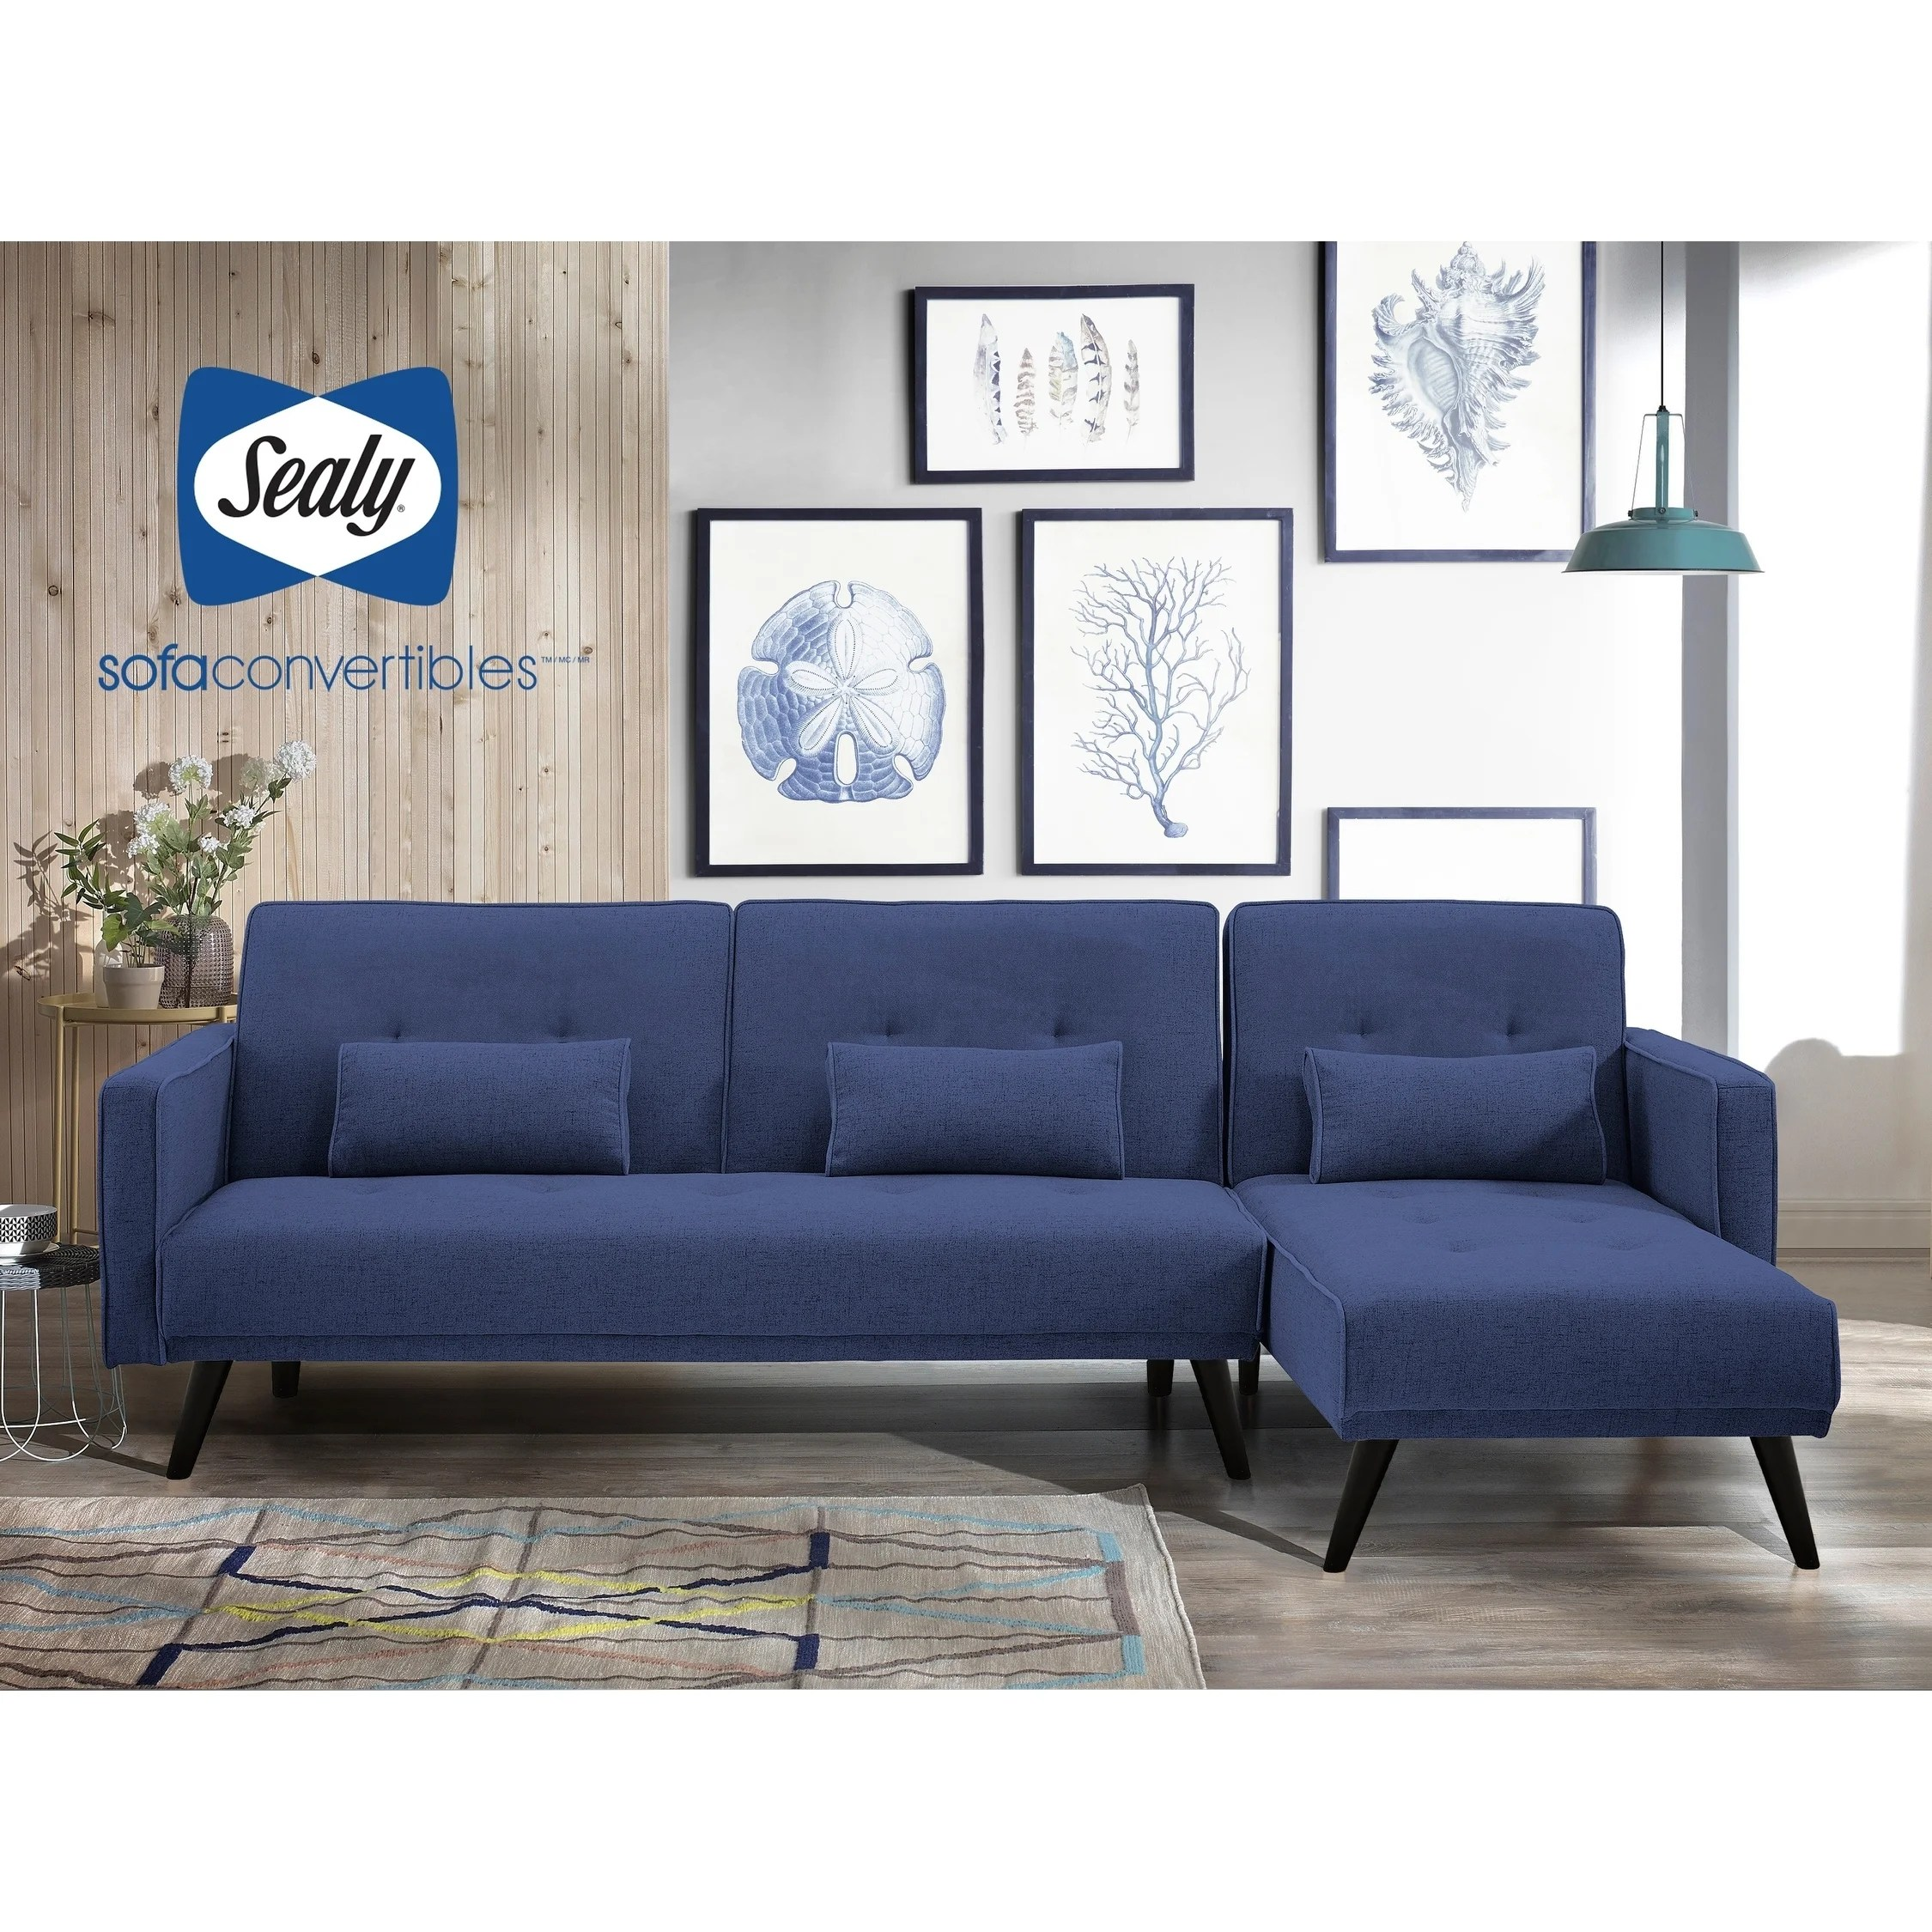 Sofa L 2 X 2 Buy Sleeper Sectional Sofas Online At Overstock Our Best Living